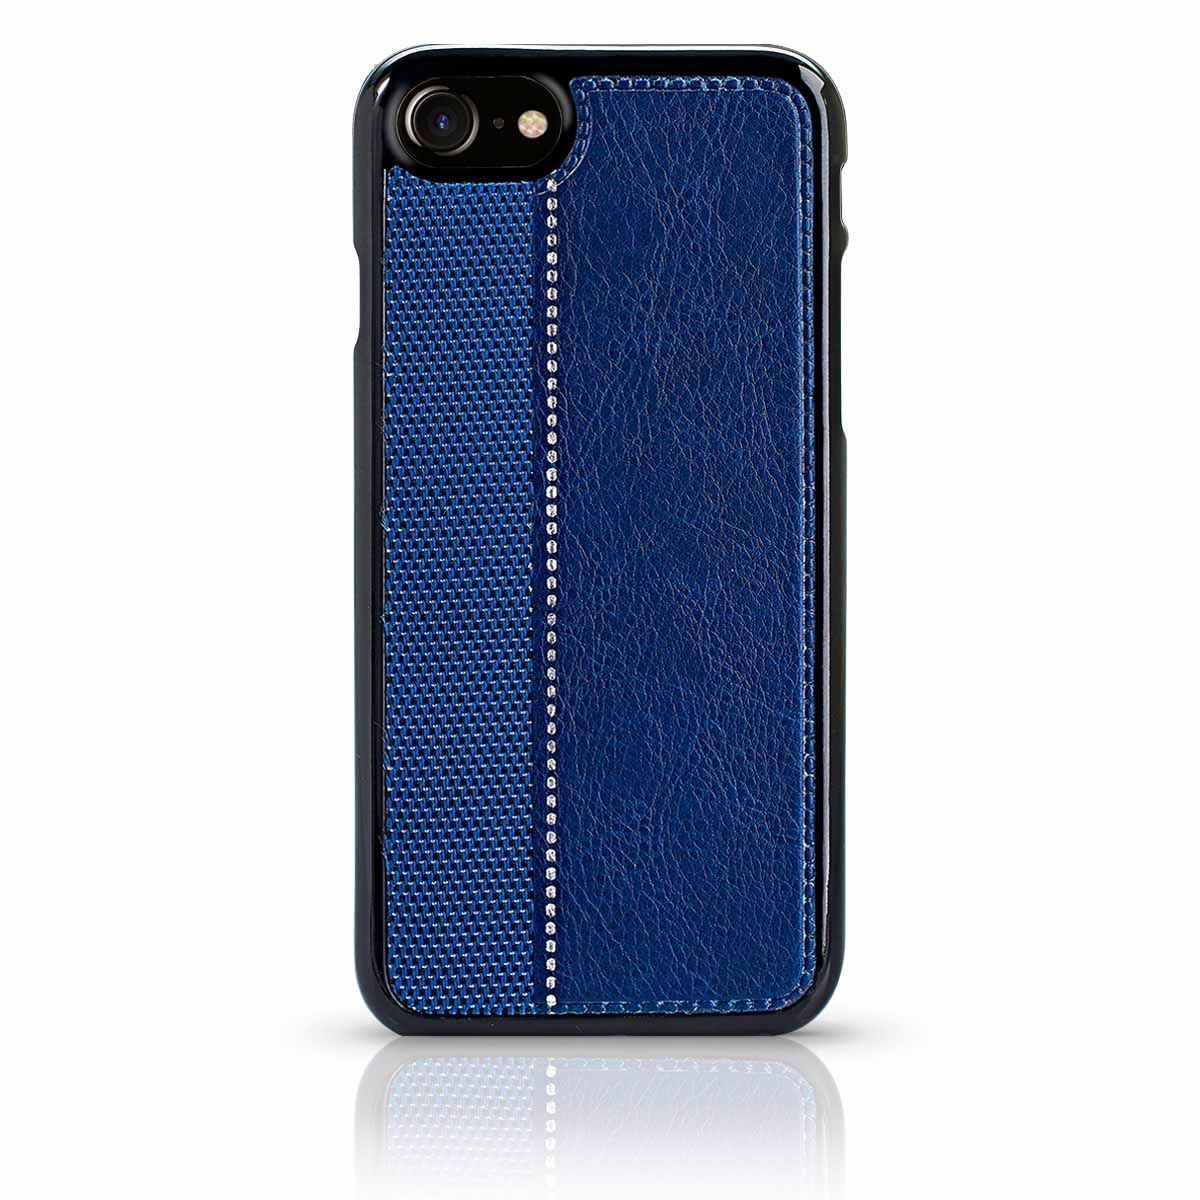 Ankaa Case for iPhone 6 - Dark Blue